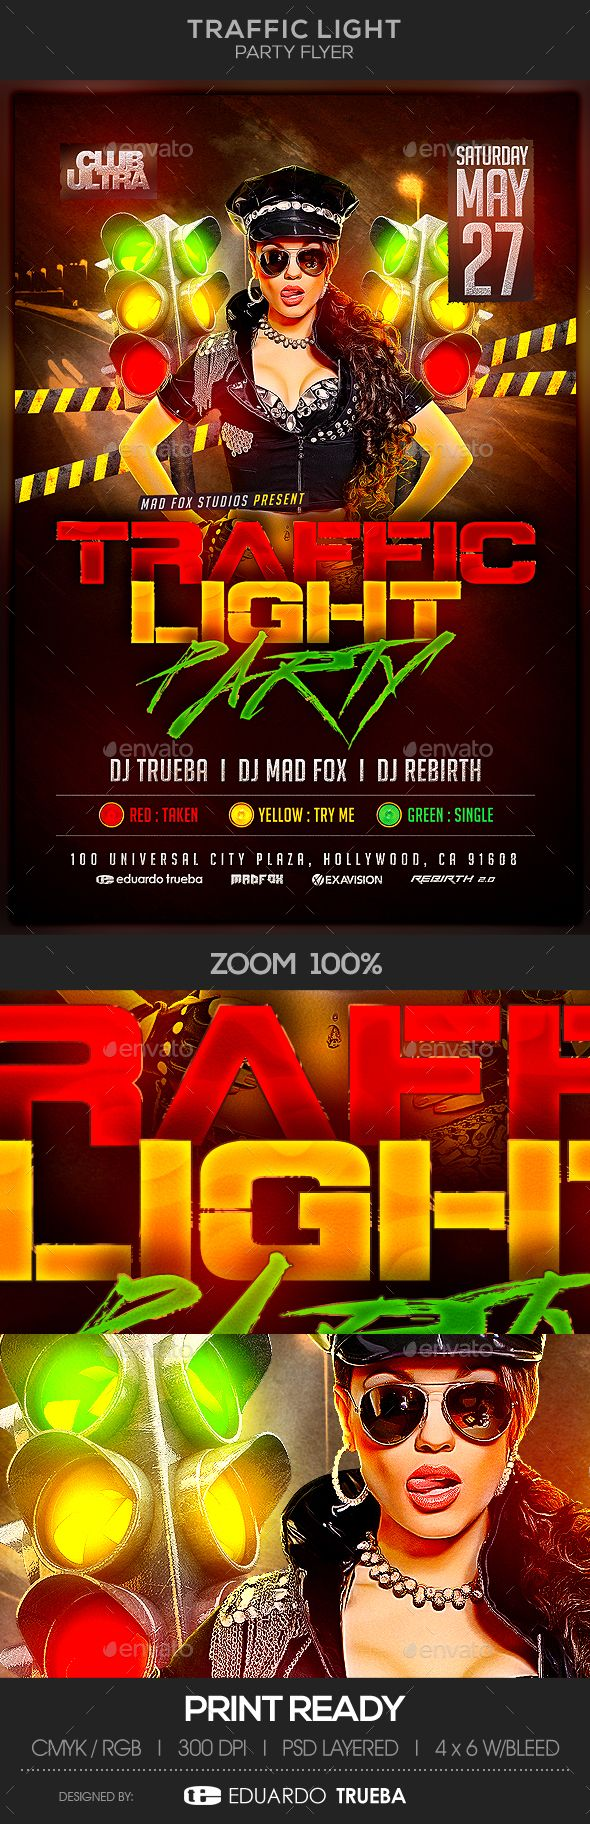 Traffic Light #Party #Flyer - Clubs & Parties Events Download here: https://graphicriver.net/item/traffic-light-party-flyer/19699187?ref=alena994